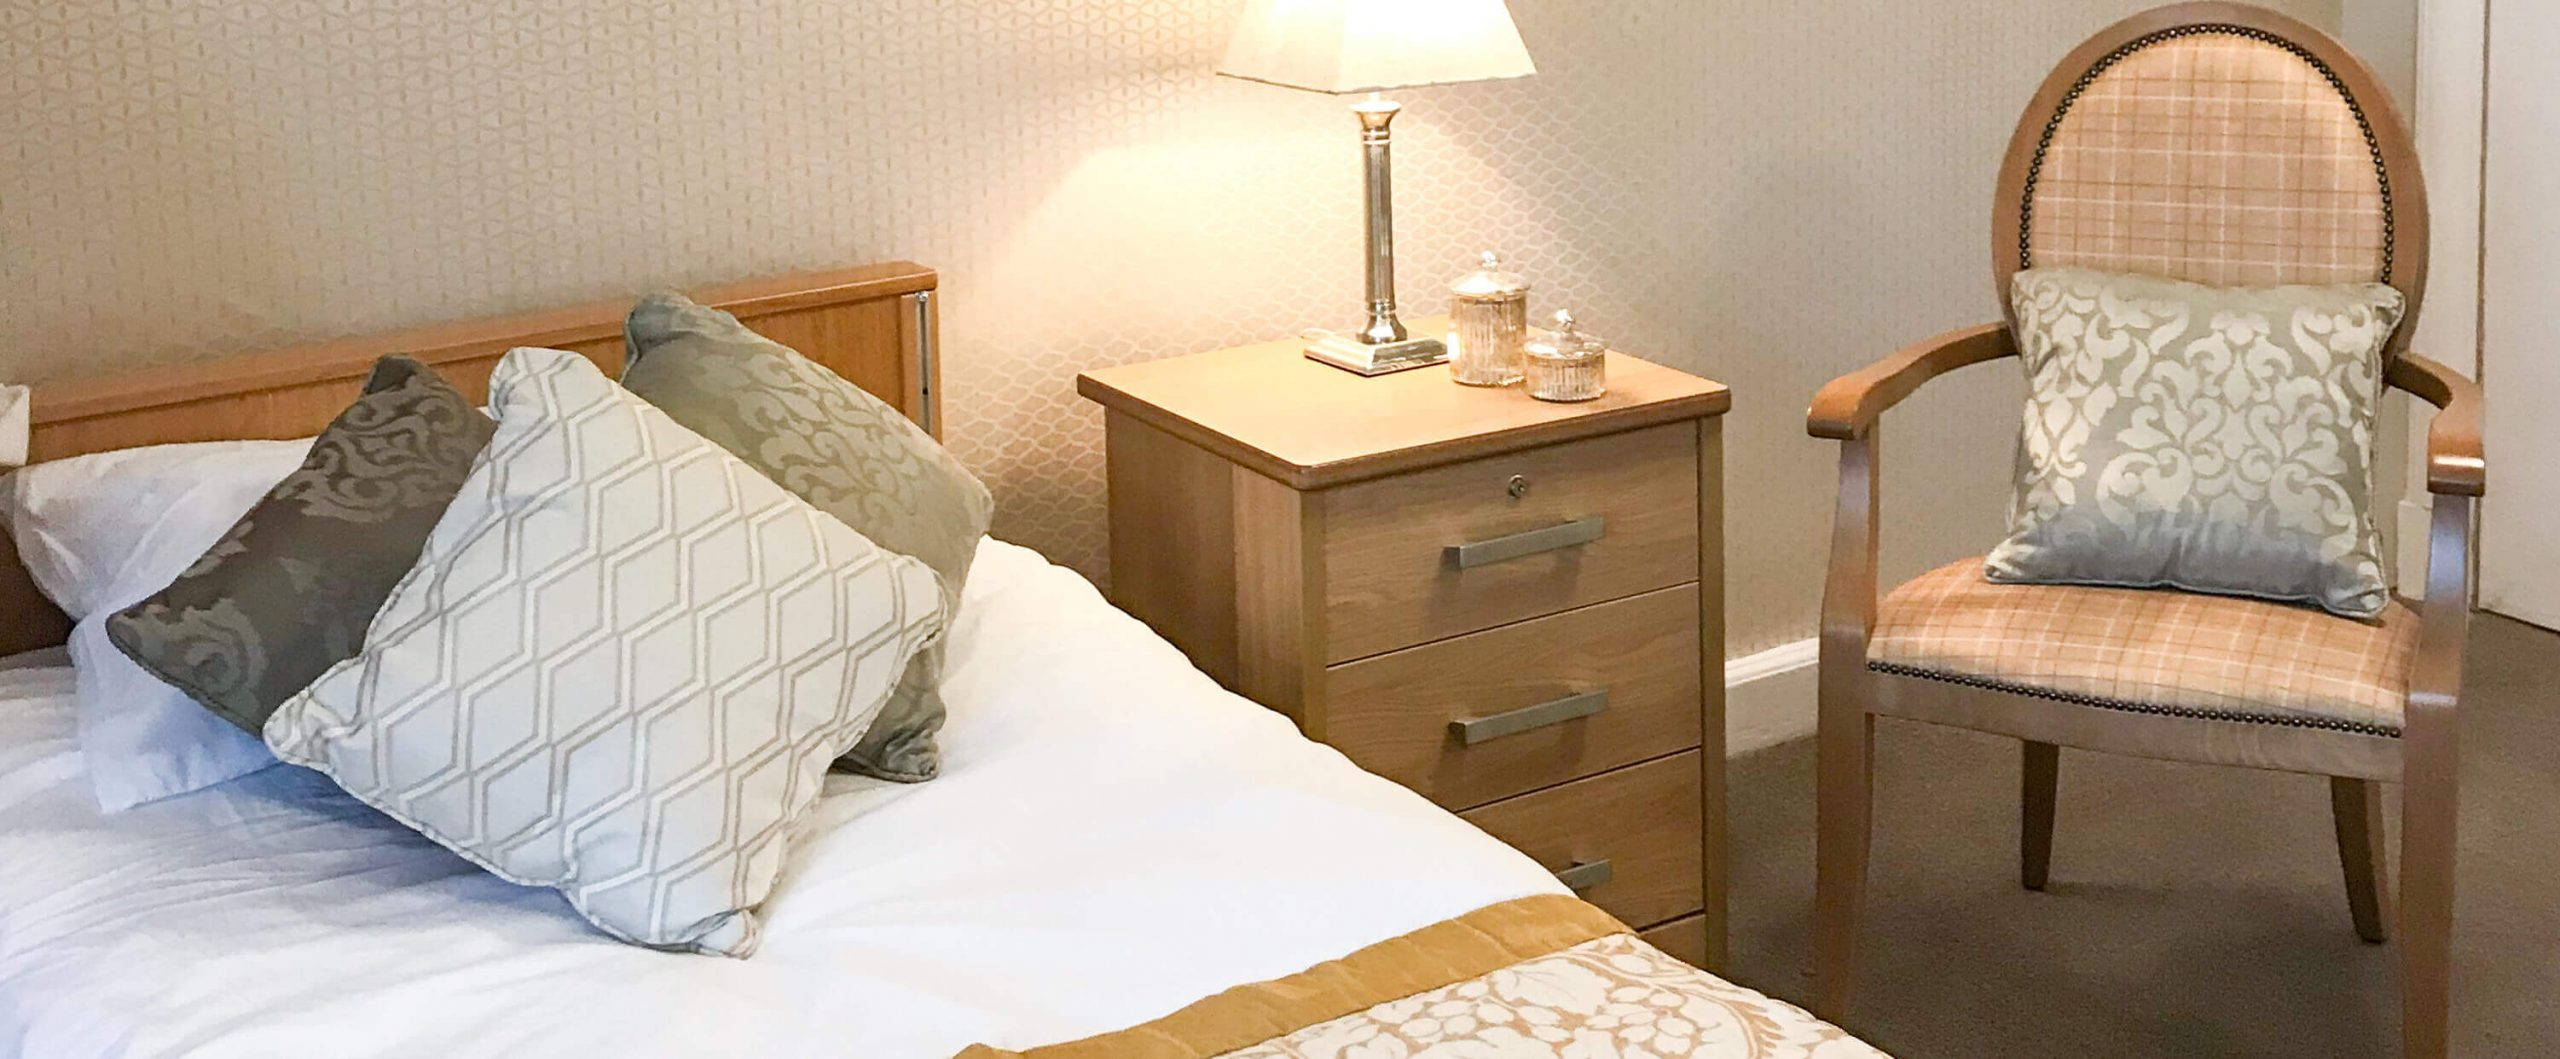 Field House Care Home accommodation